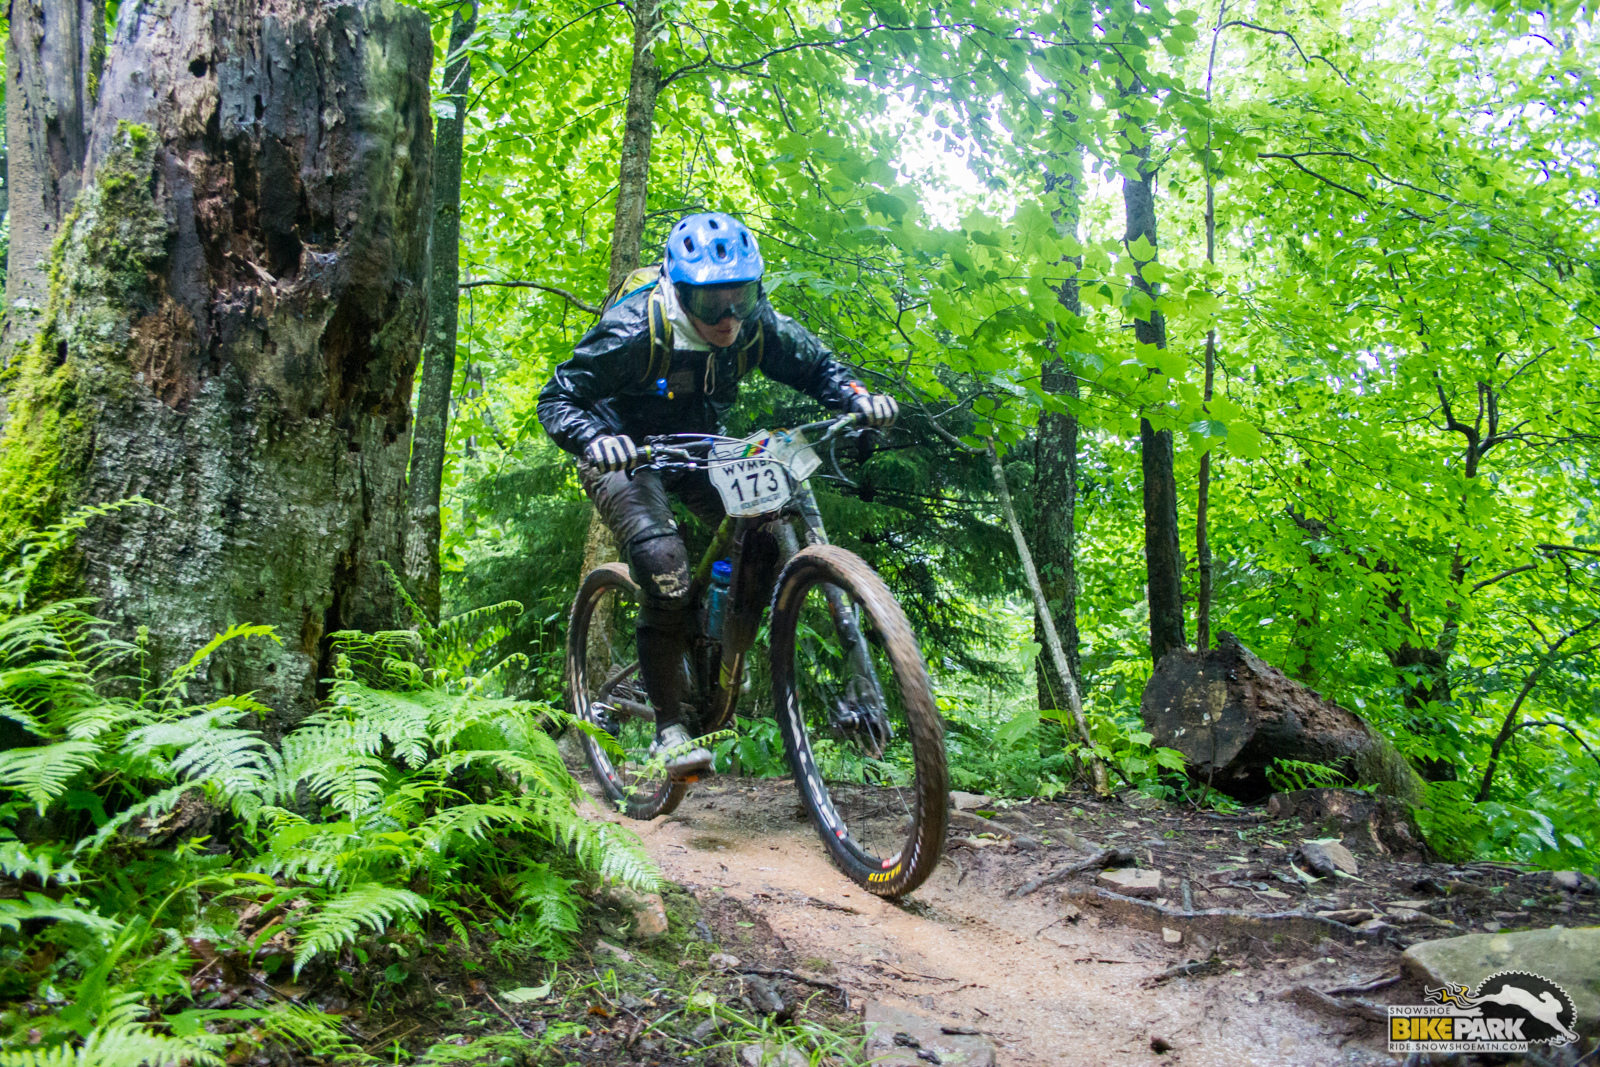 Susan Haywood won 5 of 8 stages to take the win in Pro Ex women for the weekend.